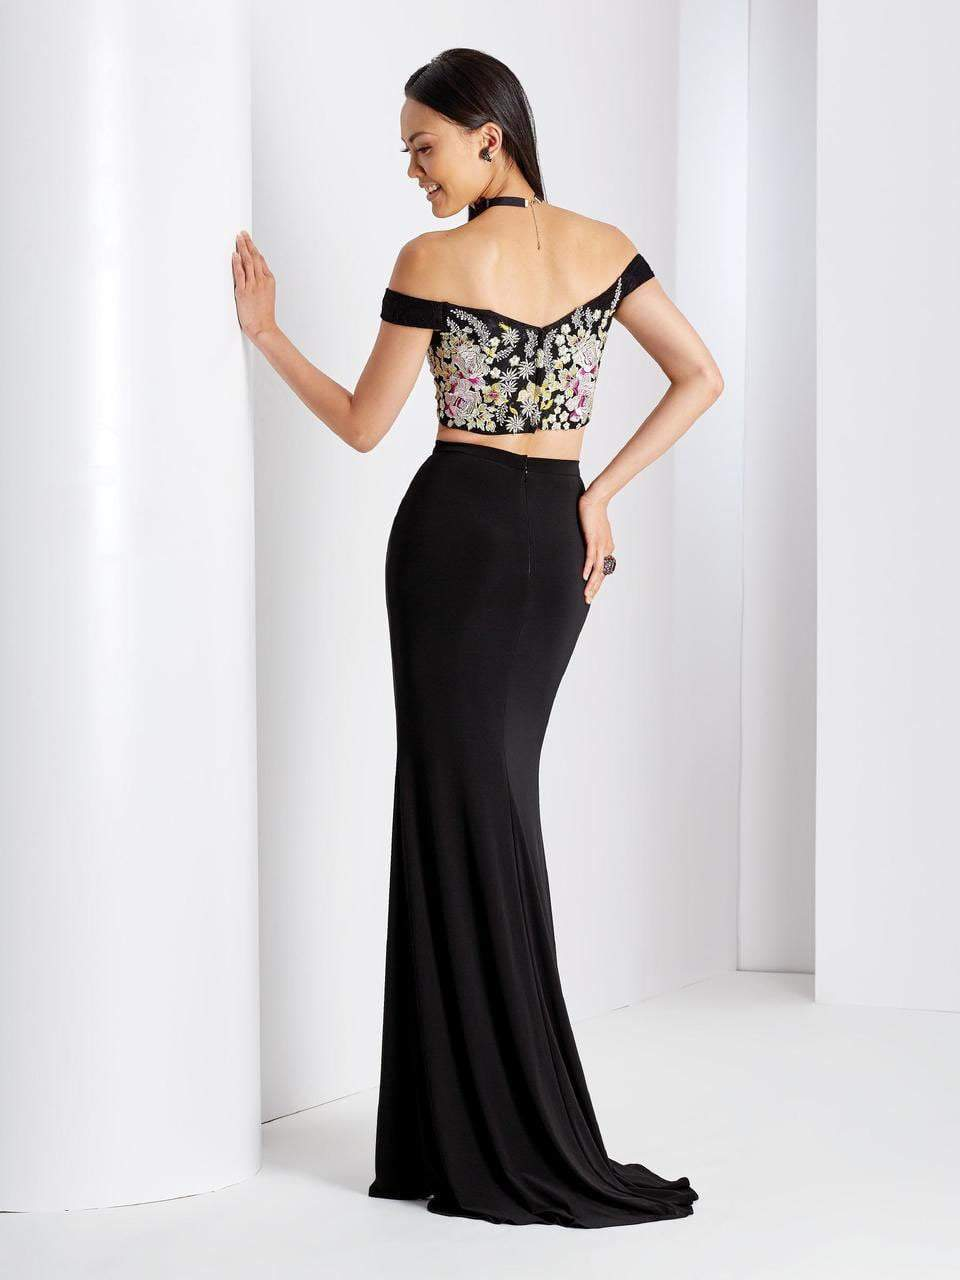 Clarisse - 3556 Off Shoulder Floral Two Piece Dress in Black and Multi-Color